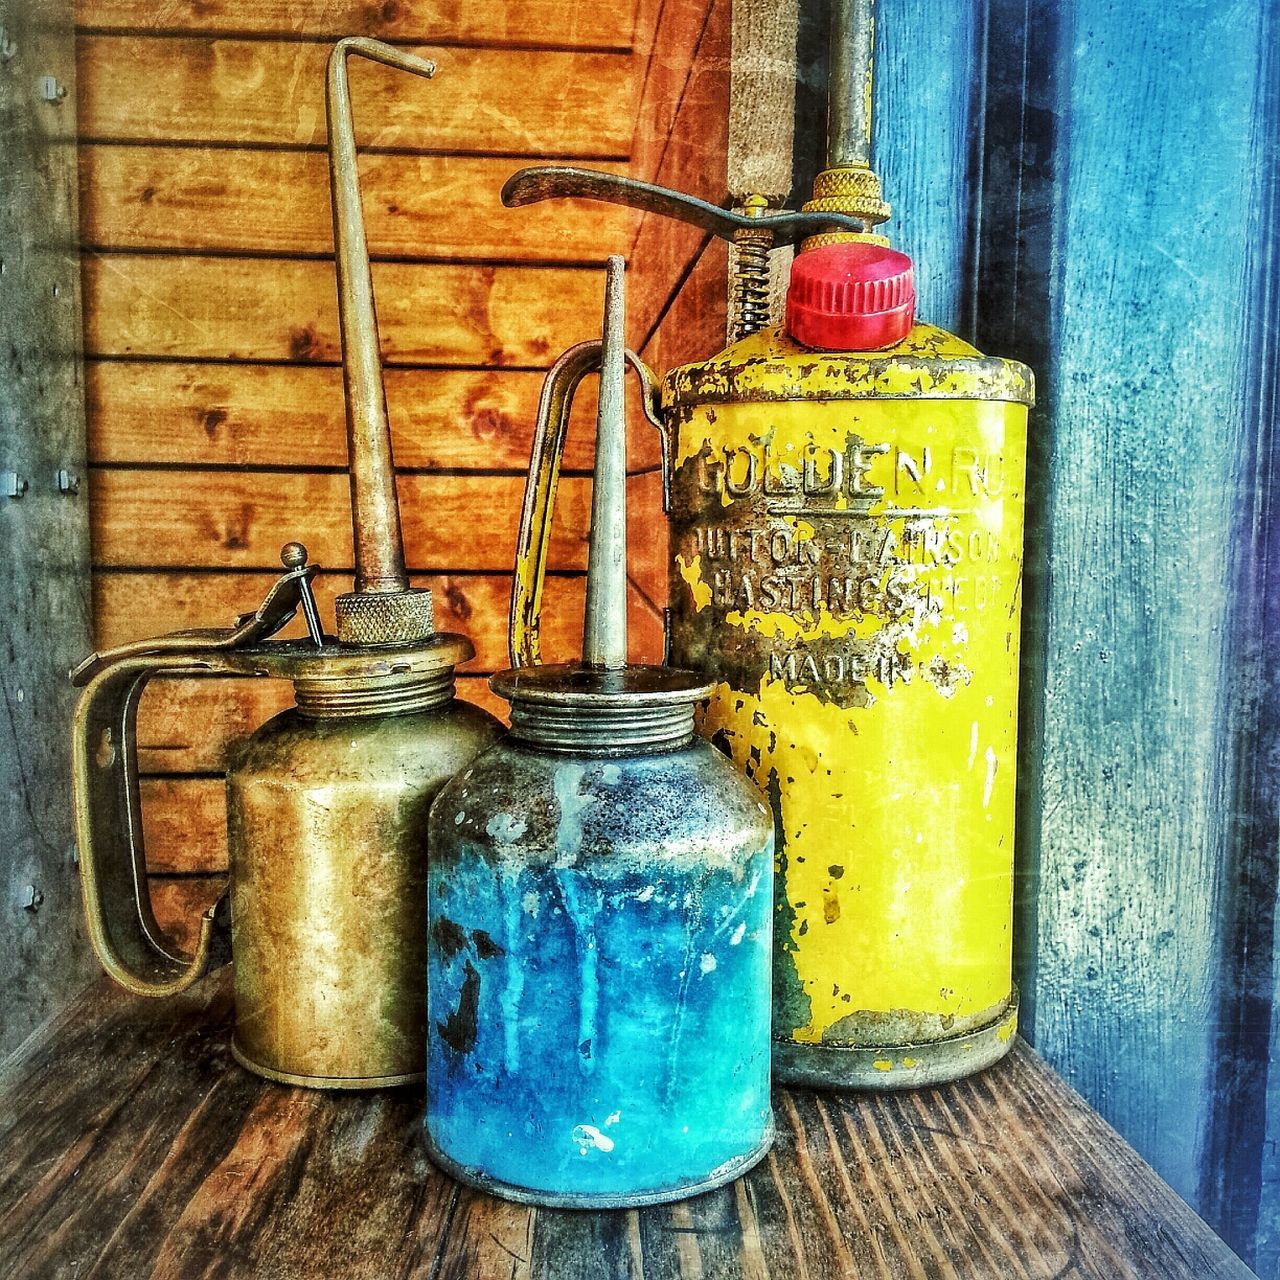 Filling Station Westport Urban Landscape Dreamscapes & Memories Coffee Shop Oil Cans PITSTOP